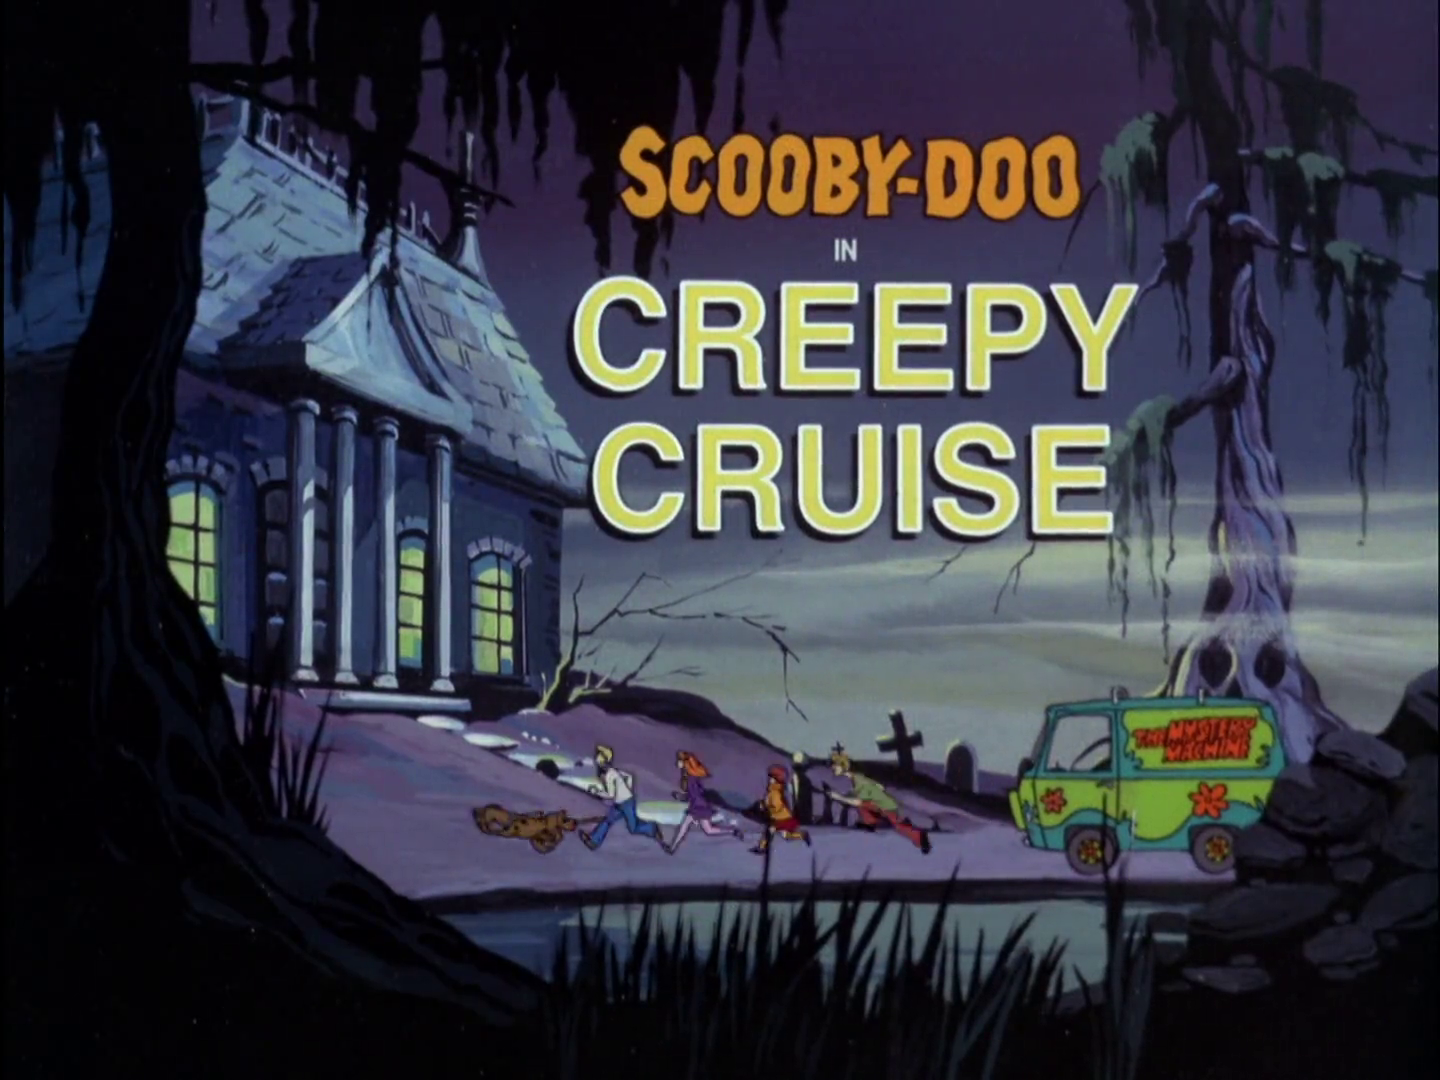 Creepy Cruise title card